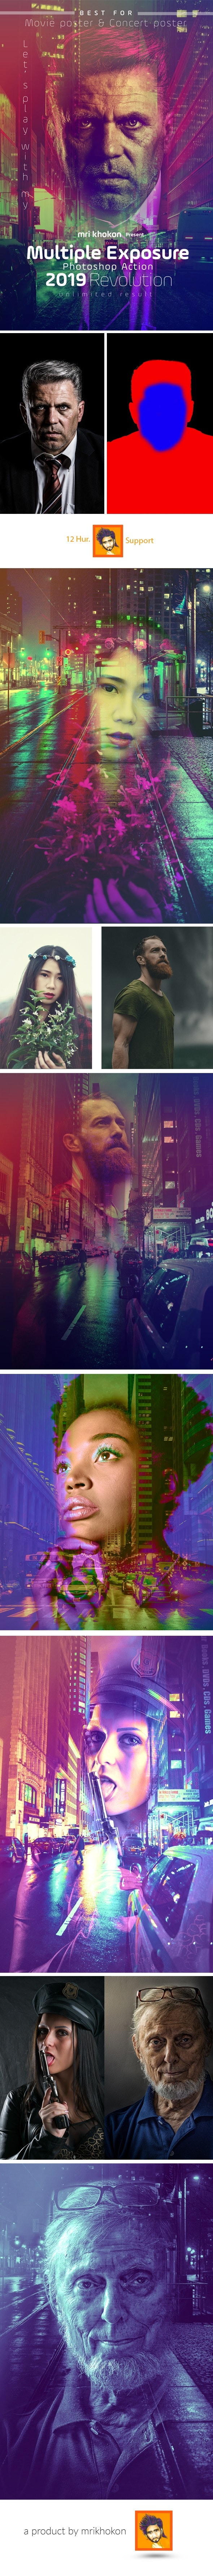 Multiple Exposure Photoshop Action - Photo Effects Actions